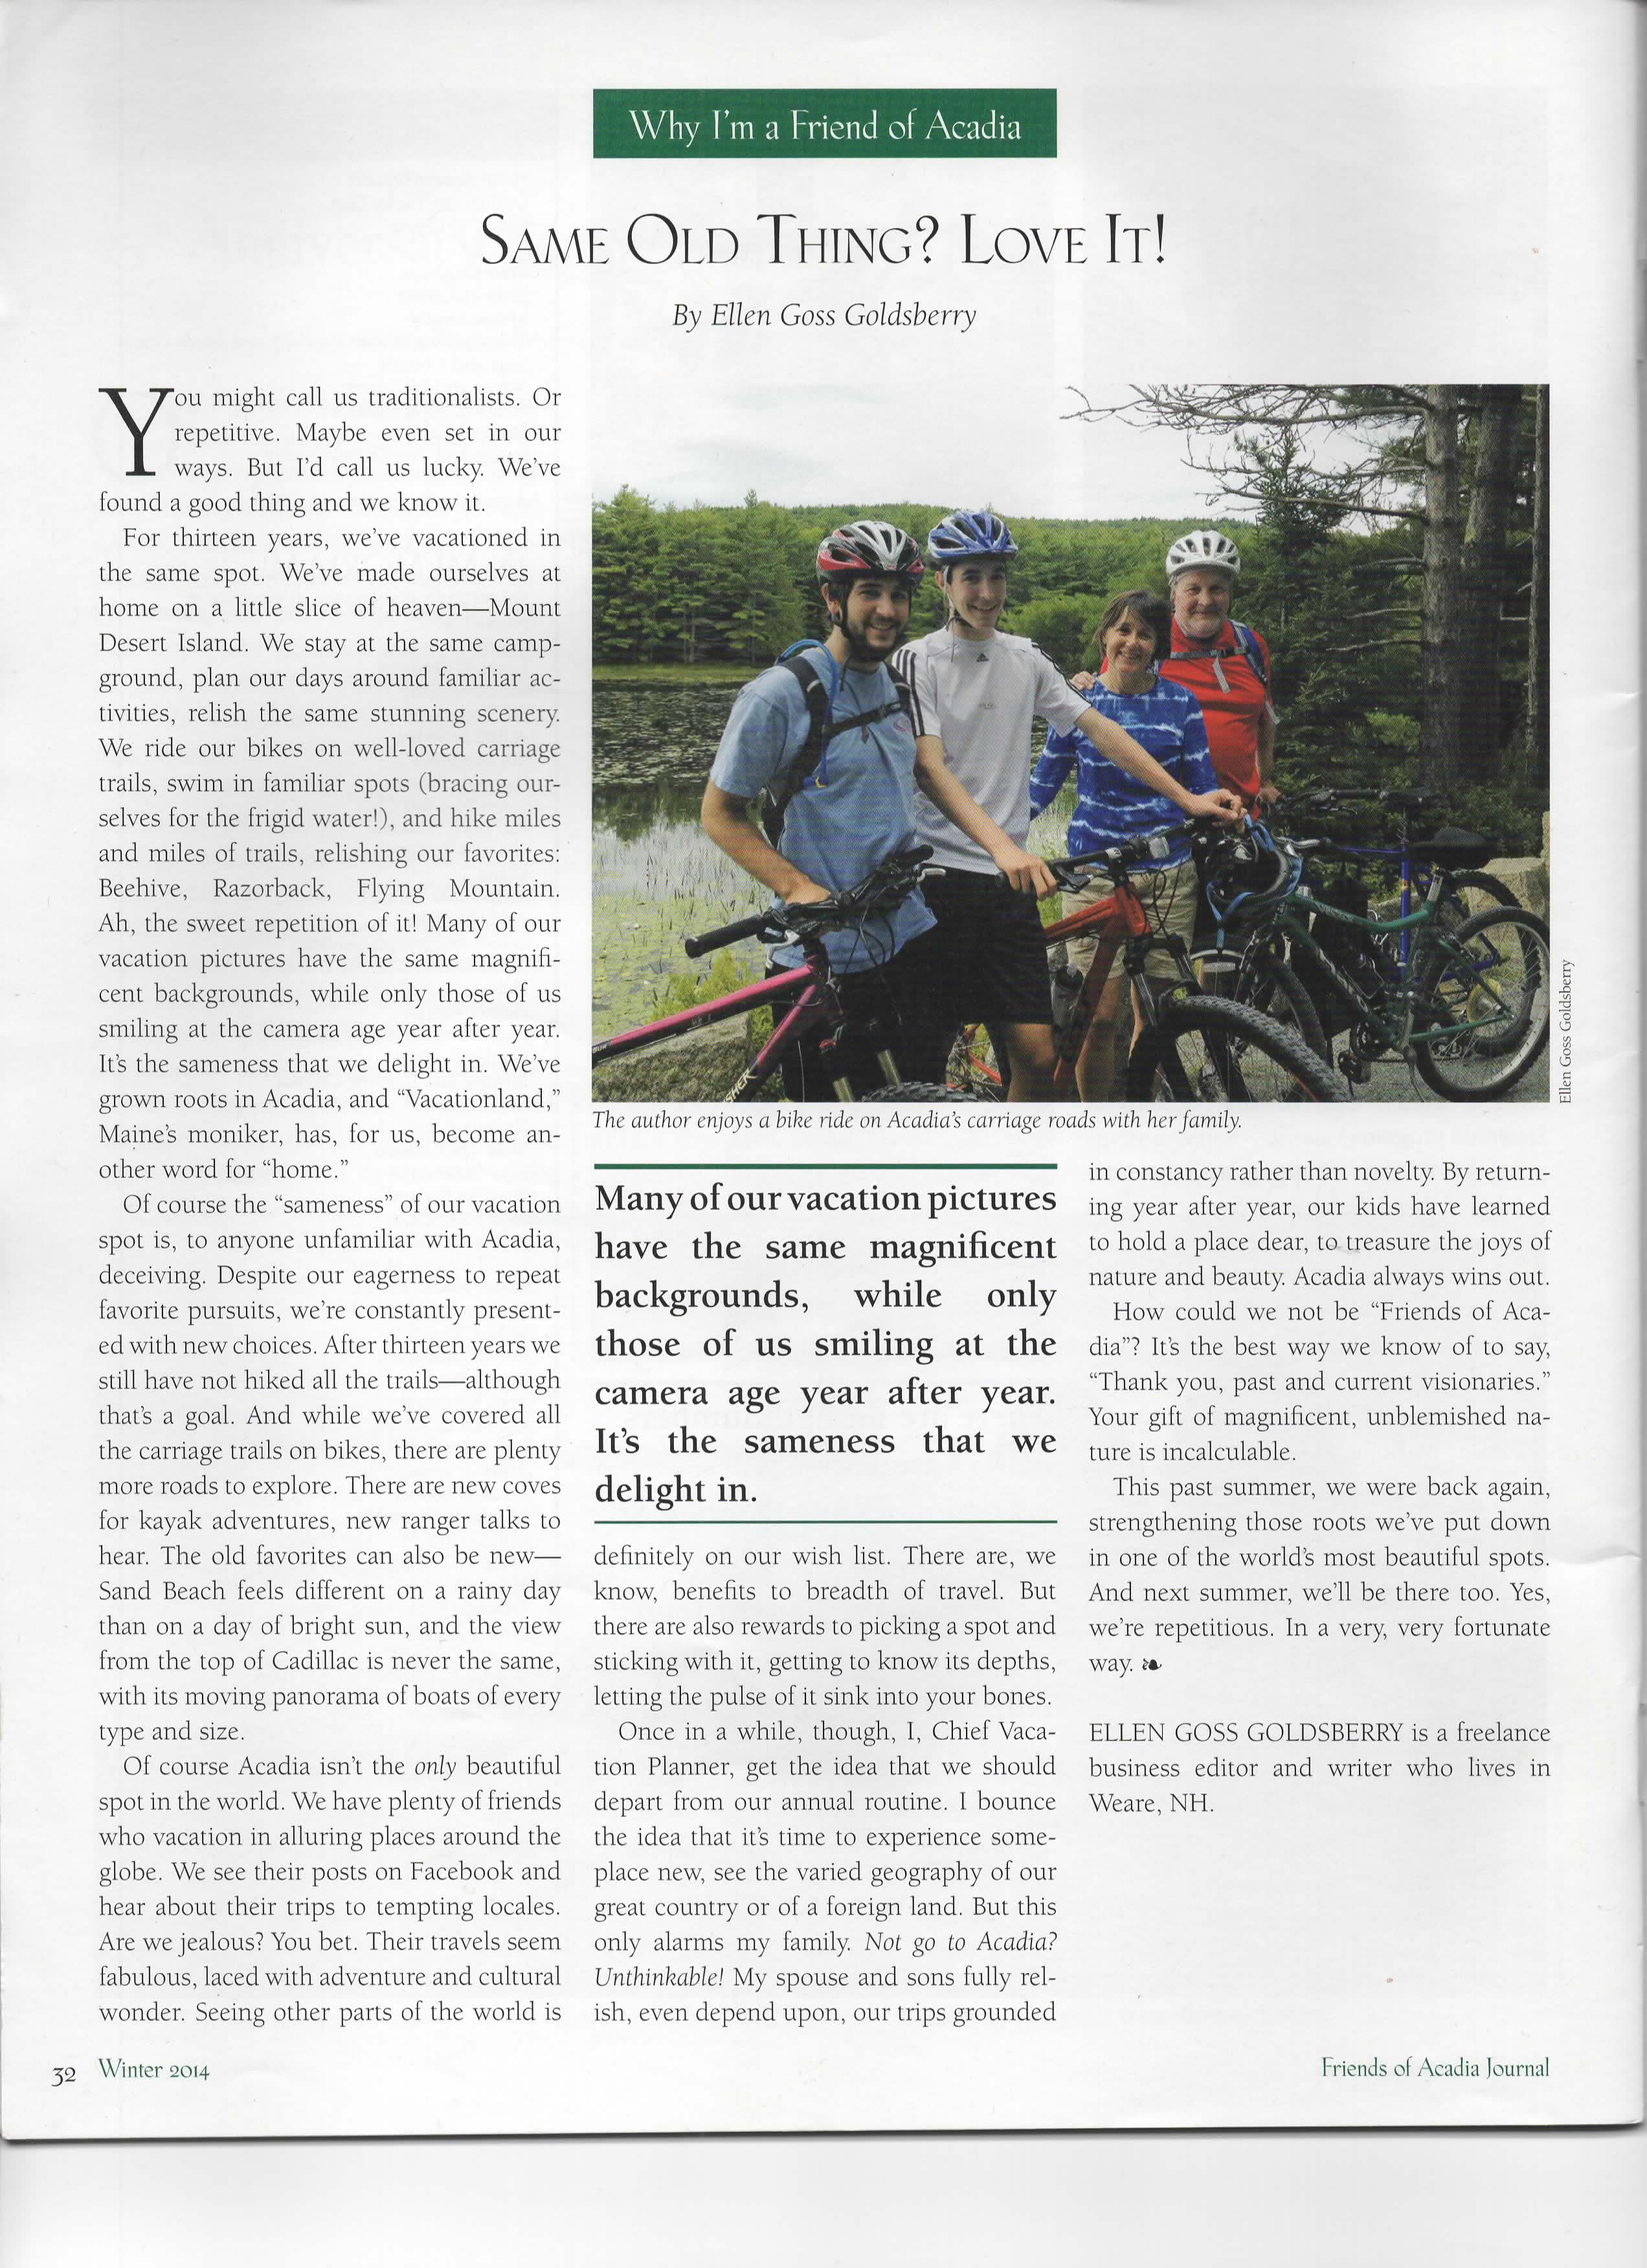 Friends of Acadia magazine